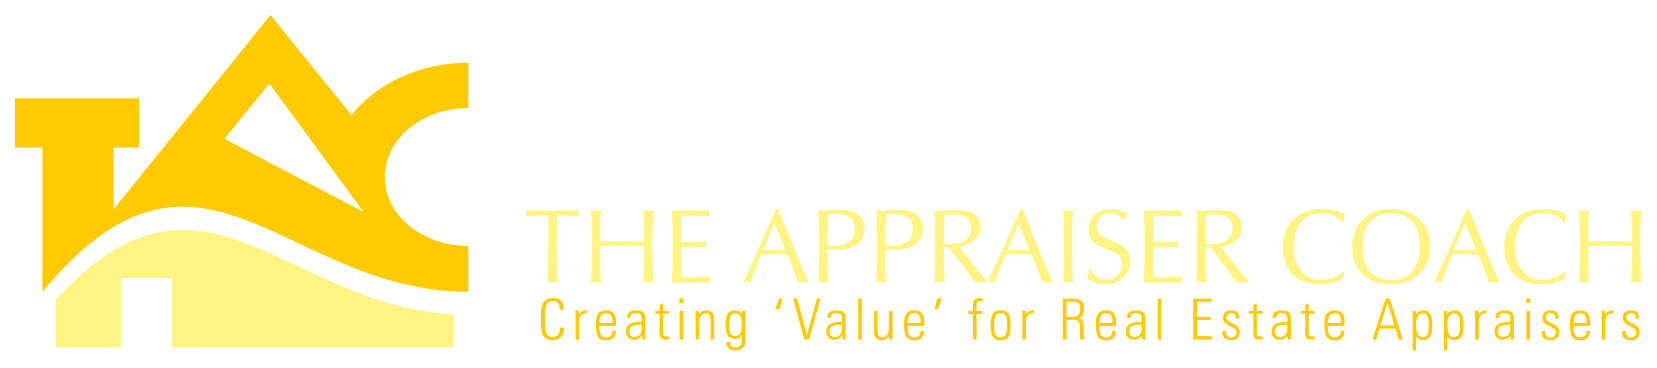 Creating Value for Real Estate Appraisers